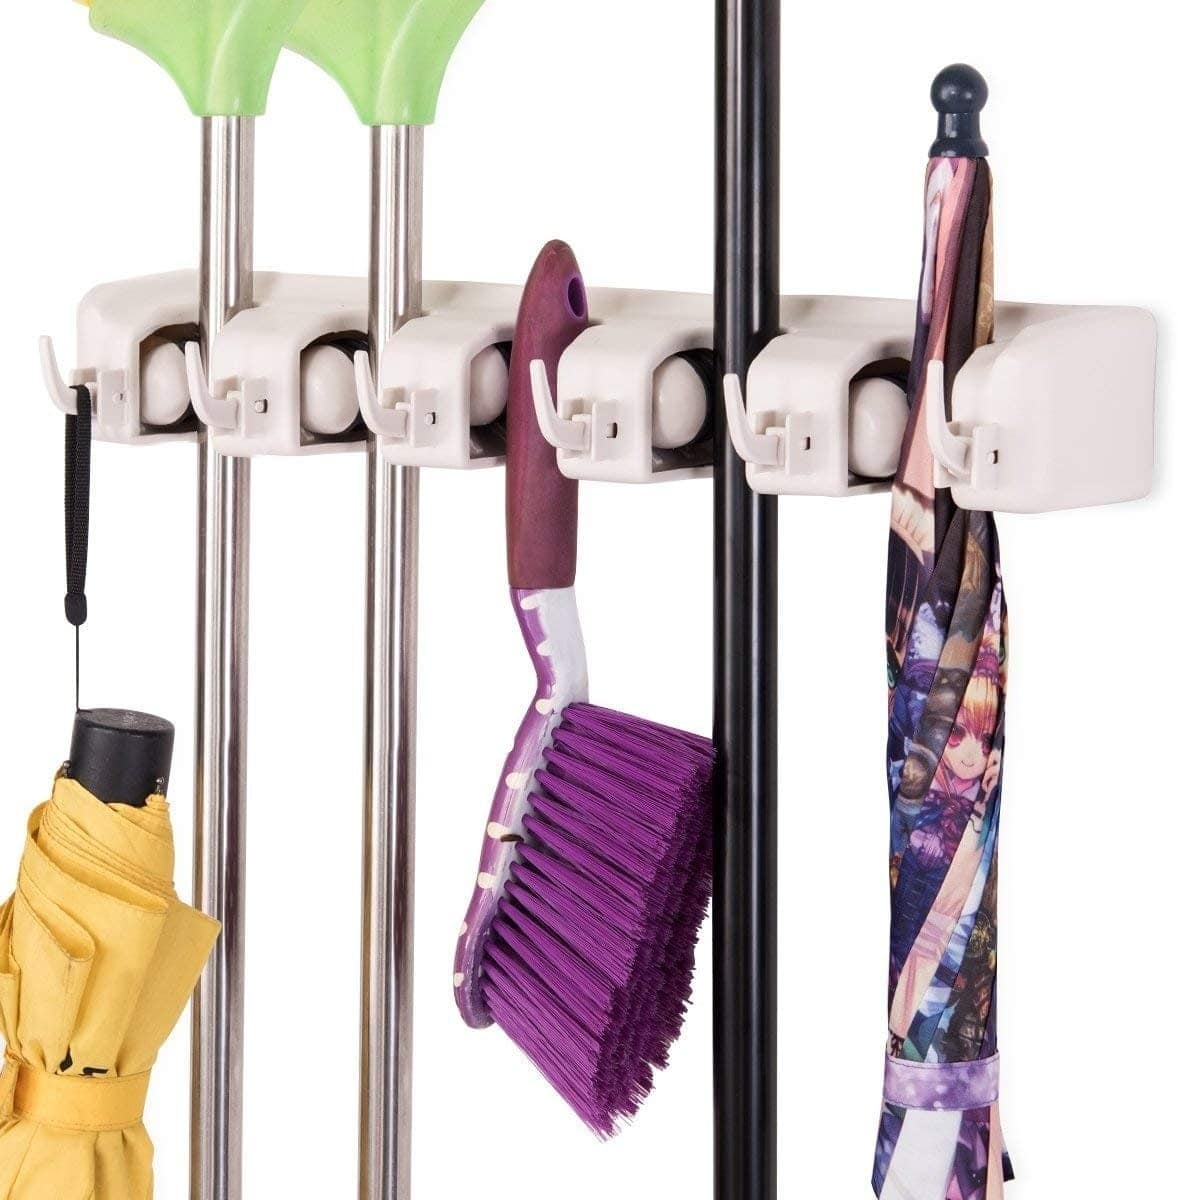 Costway Wall-Mounted Mop Holder Hanger with 5 Positions for $14 + Free Shipping